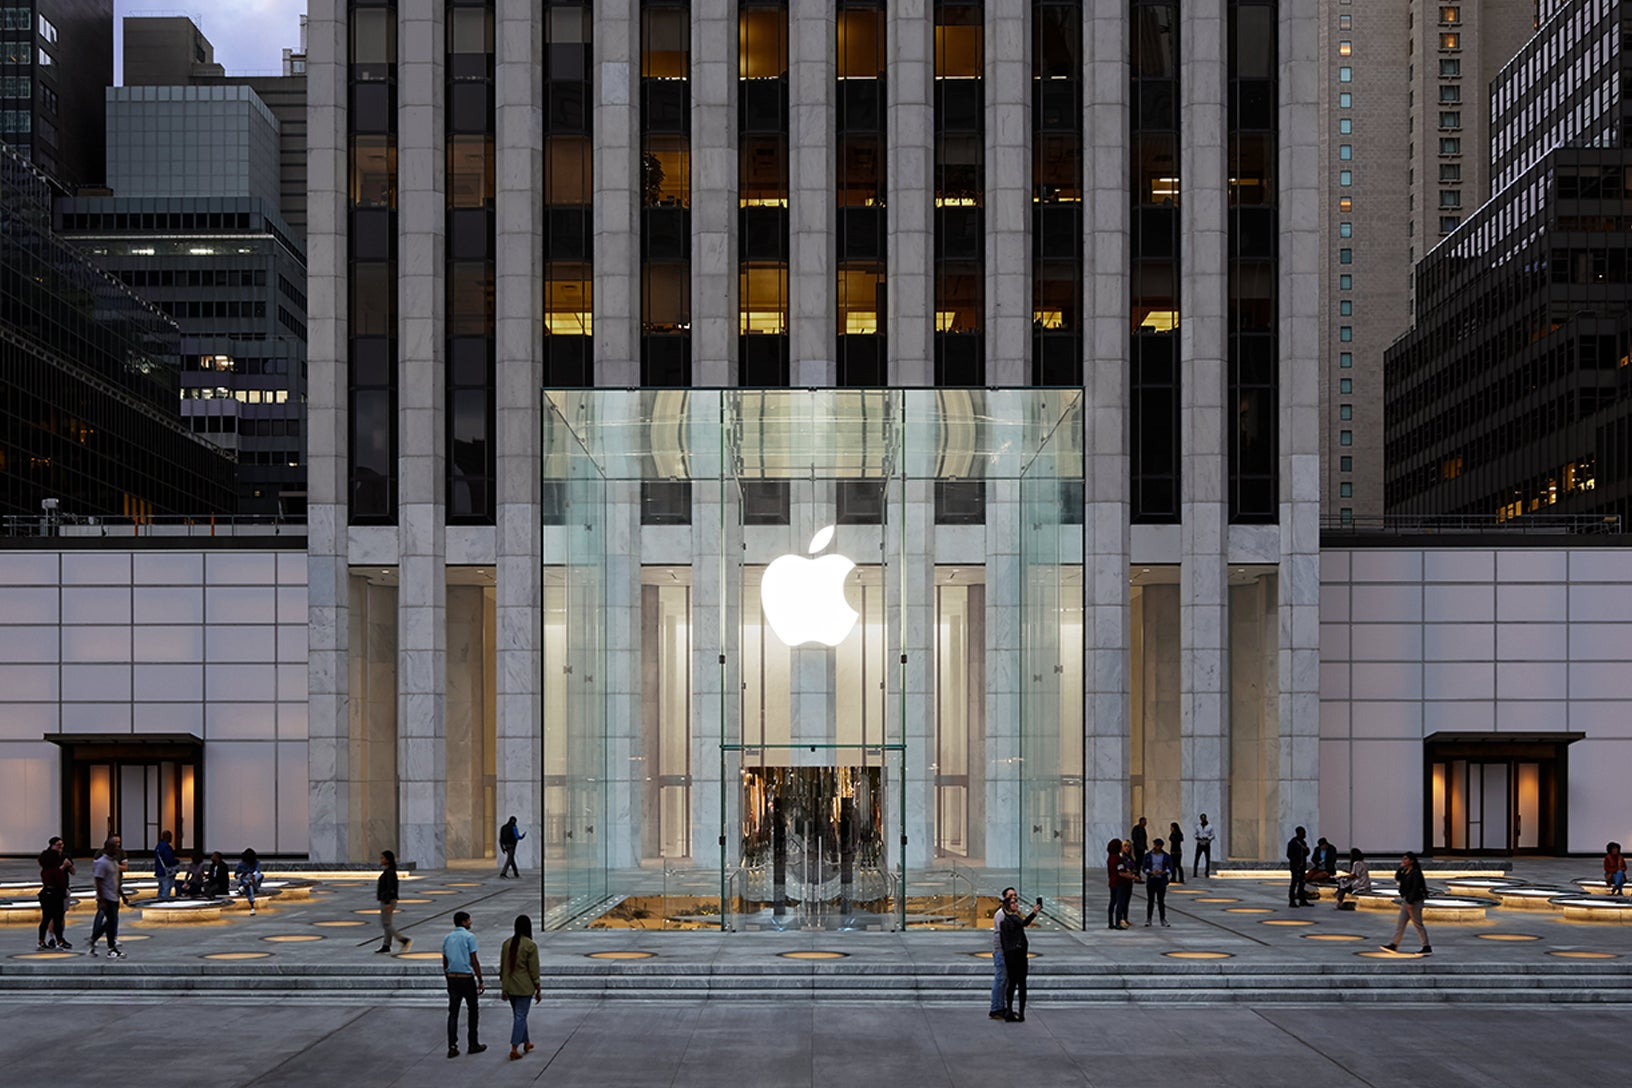 All Apple U.S. Stores Now Open for the First Time Since Coronavirus Outbreak